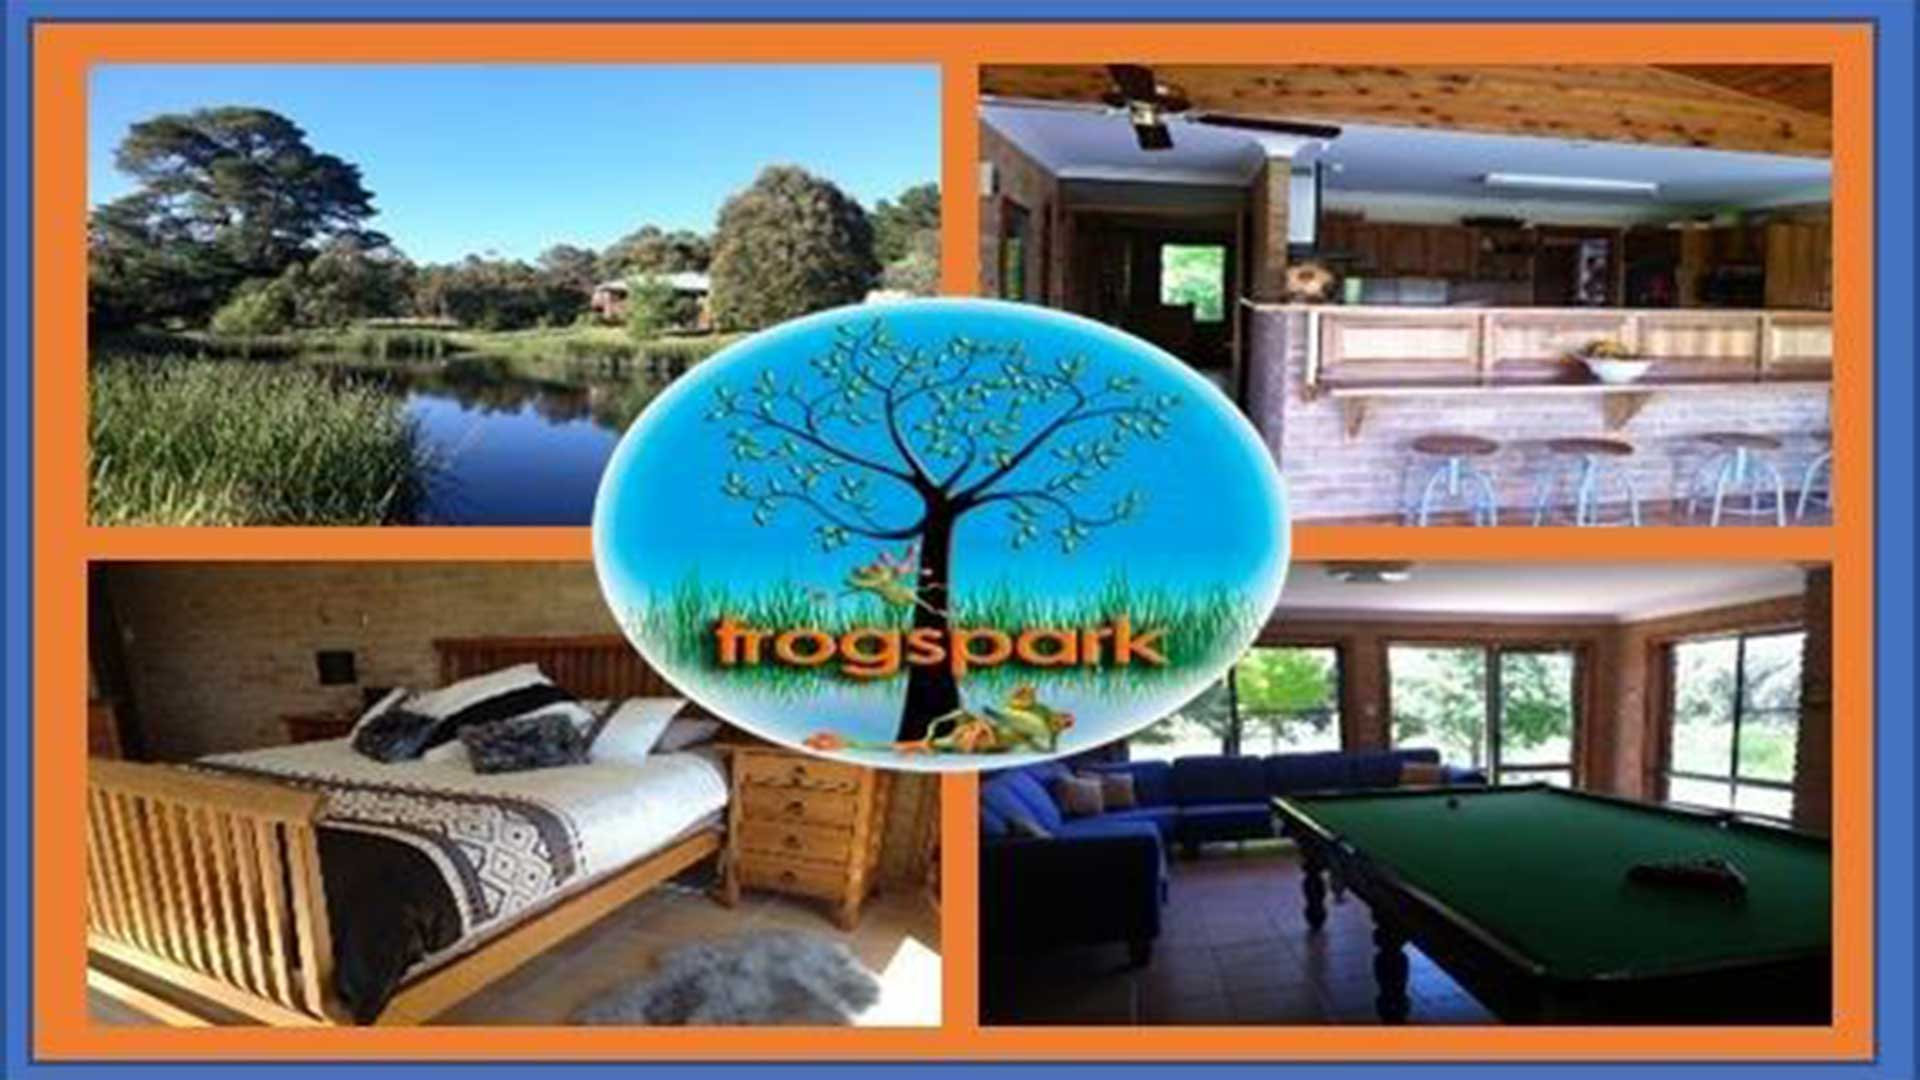 Accommodation - Frogspark | Visit Oberon